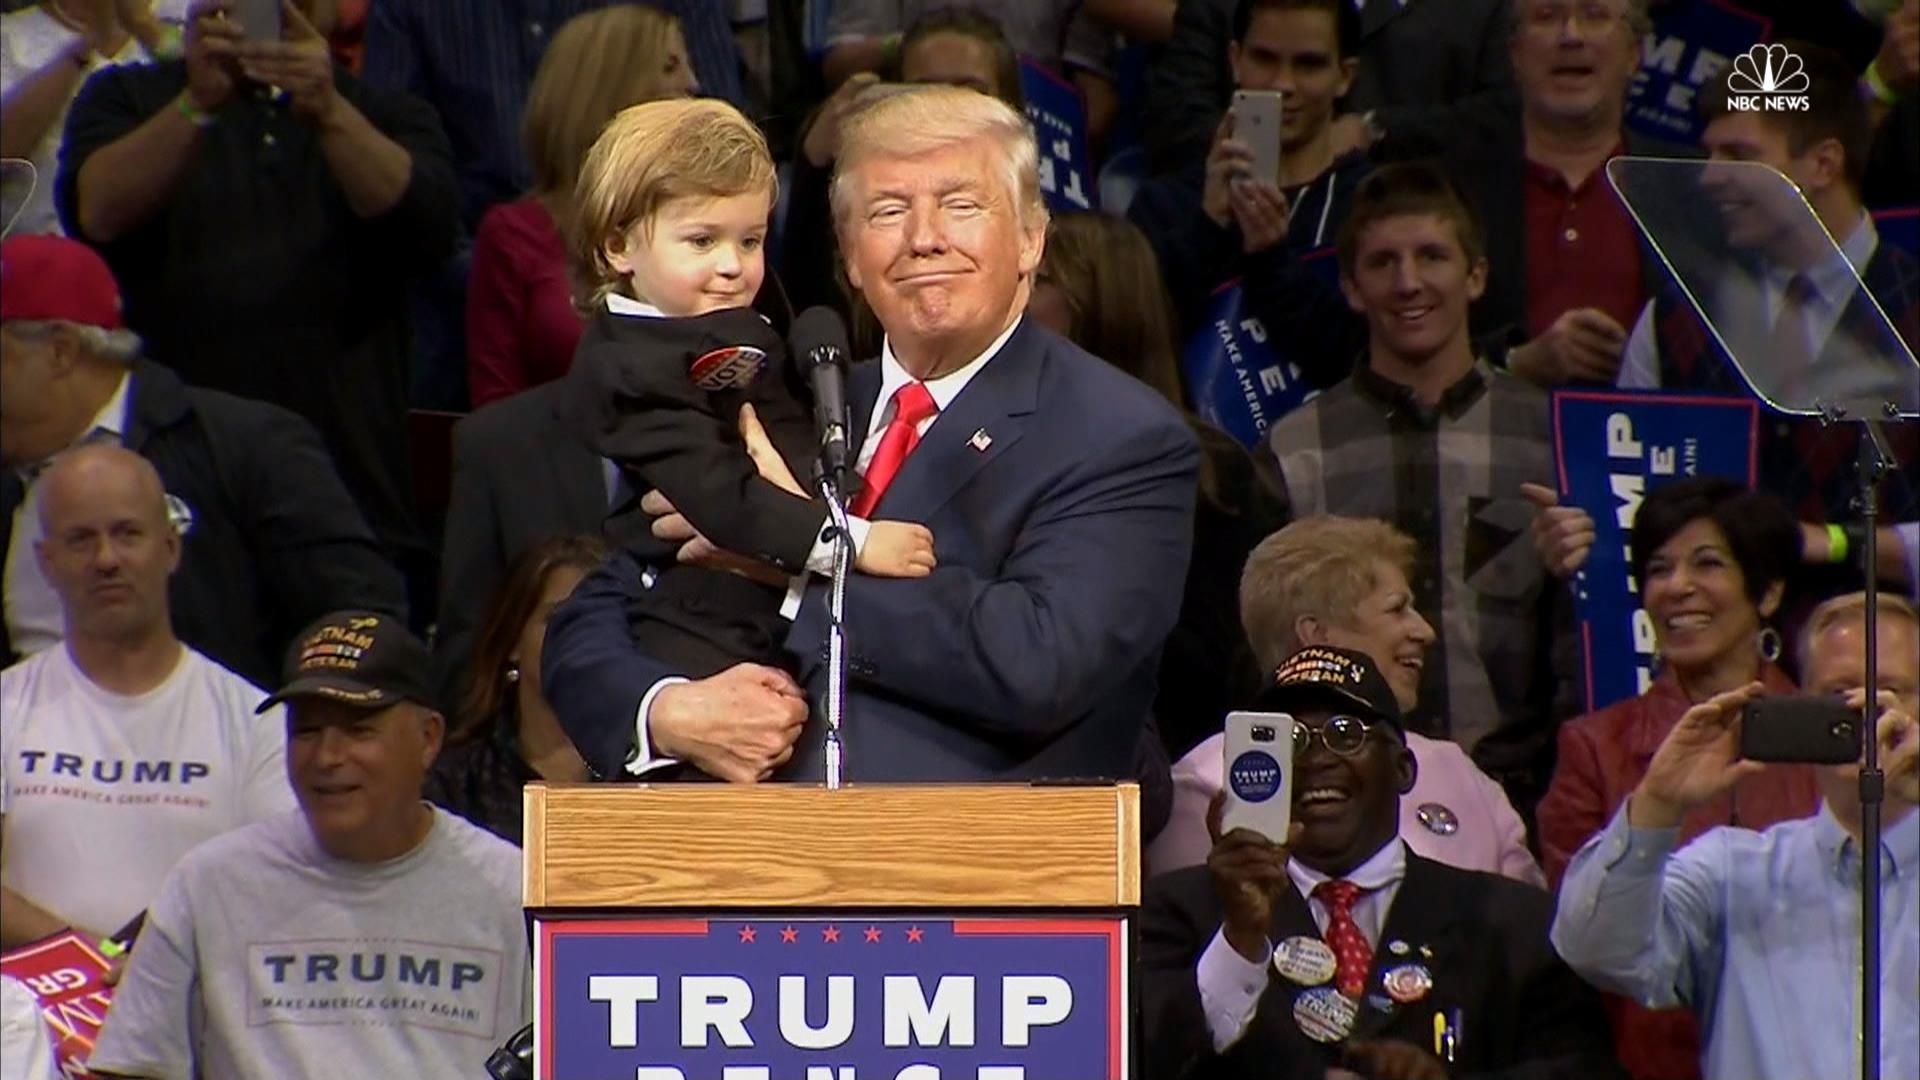 Trump to Baby Look-A-Like: 'You Are Much Too Good Looking ...